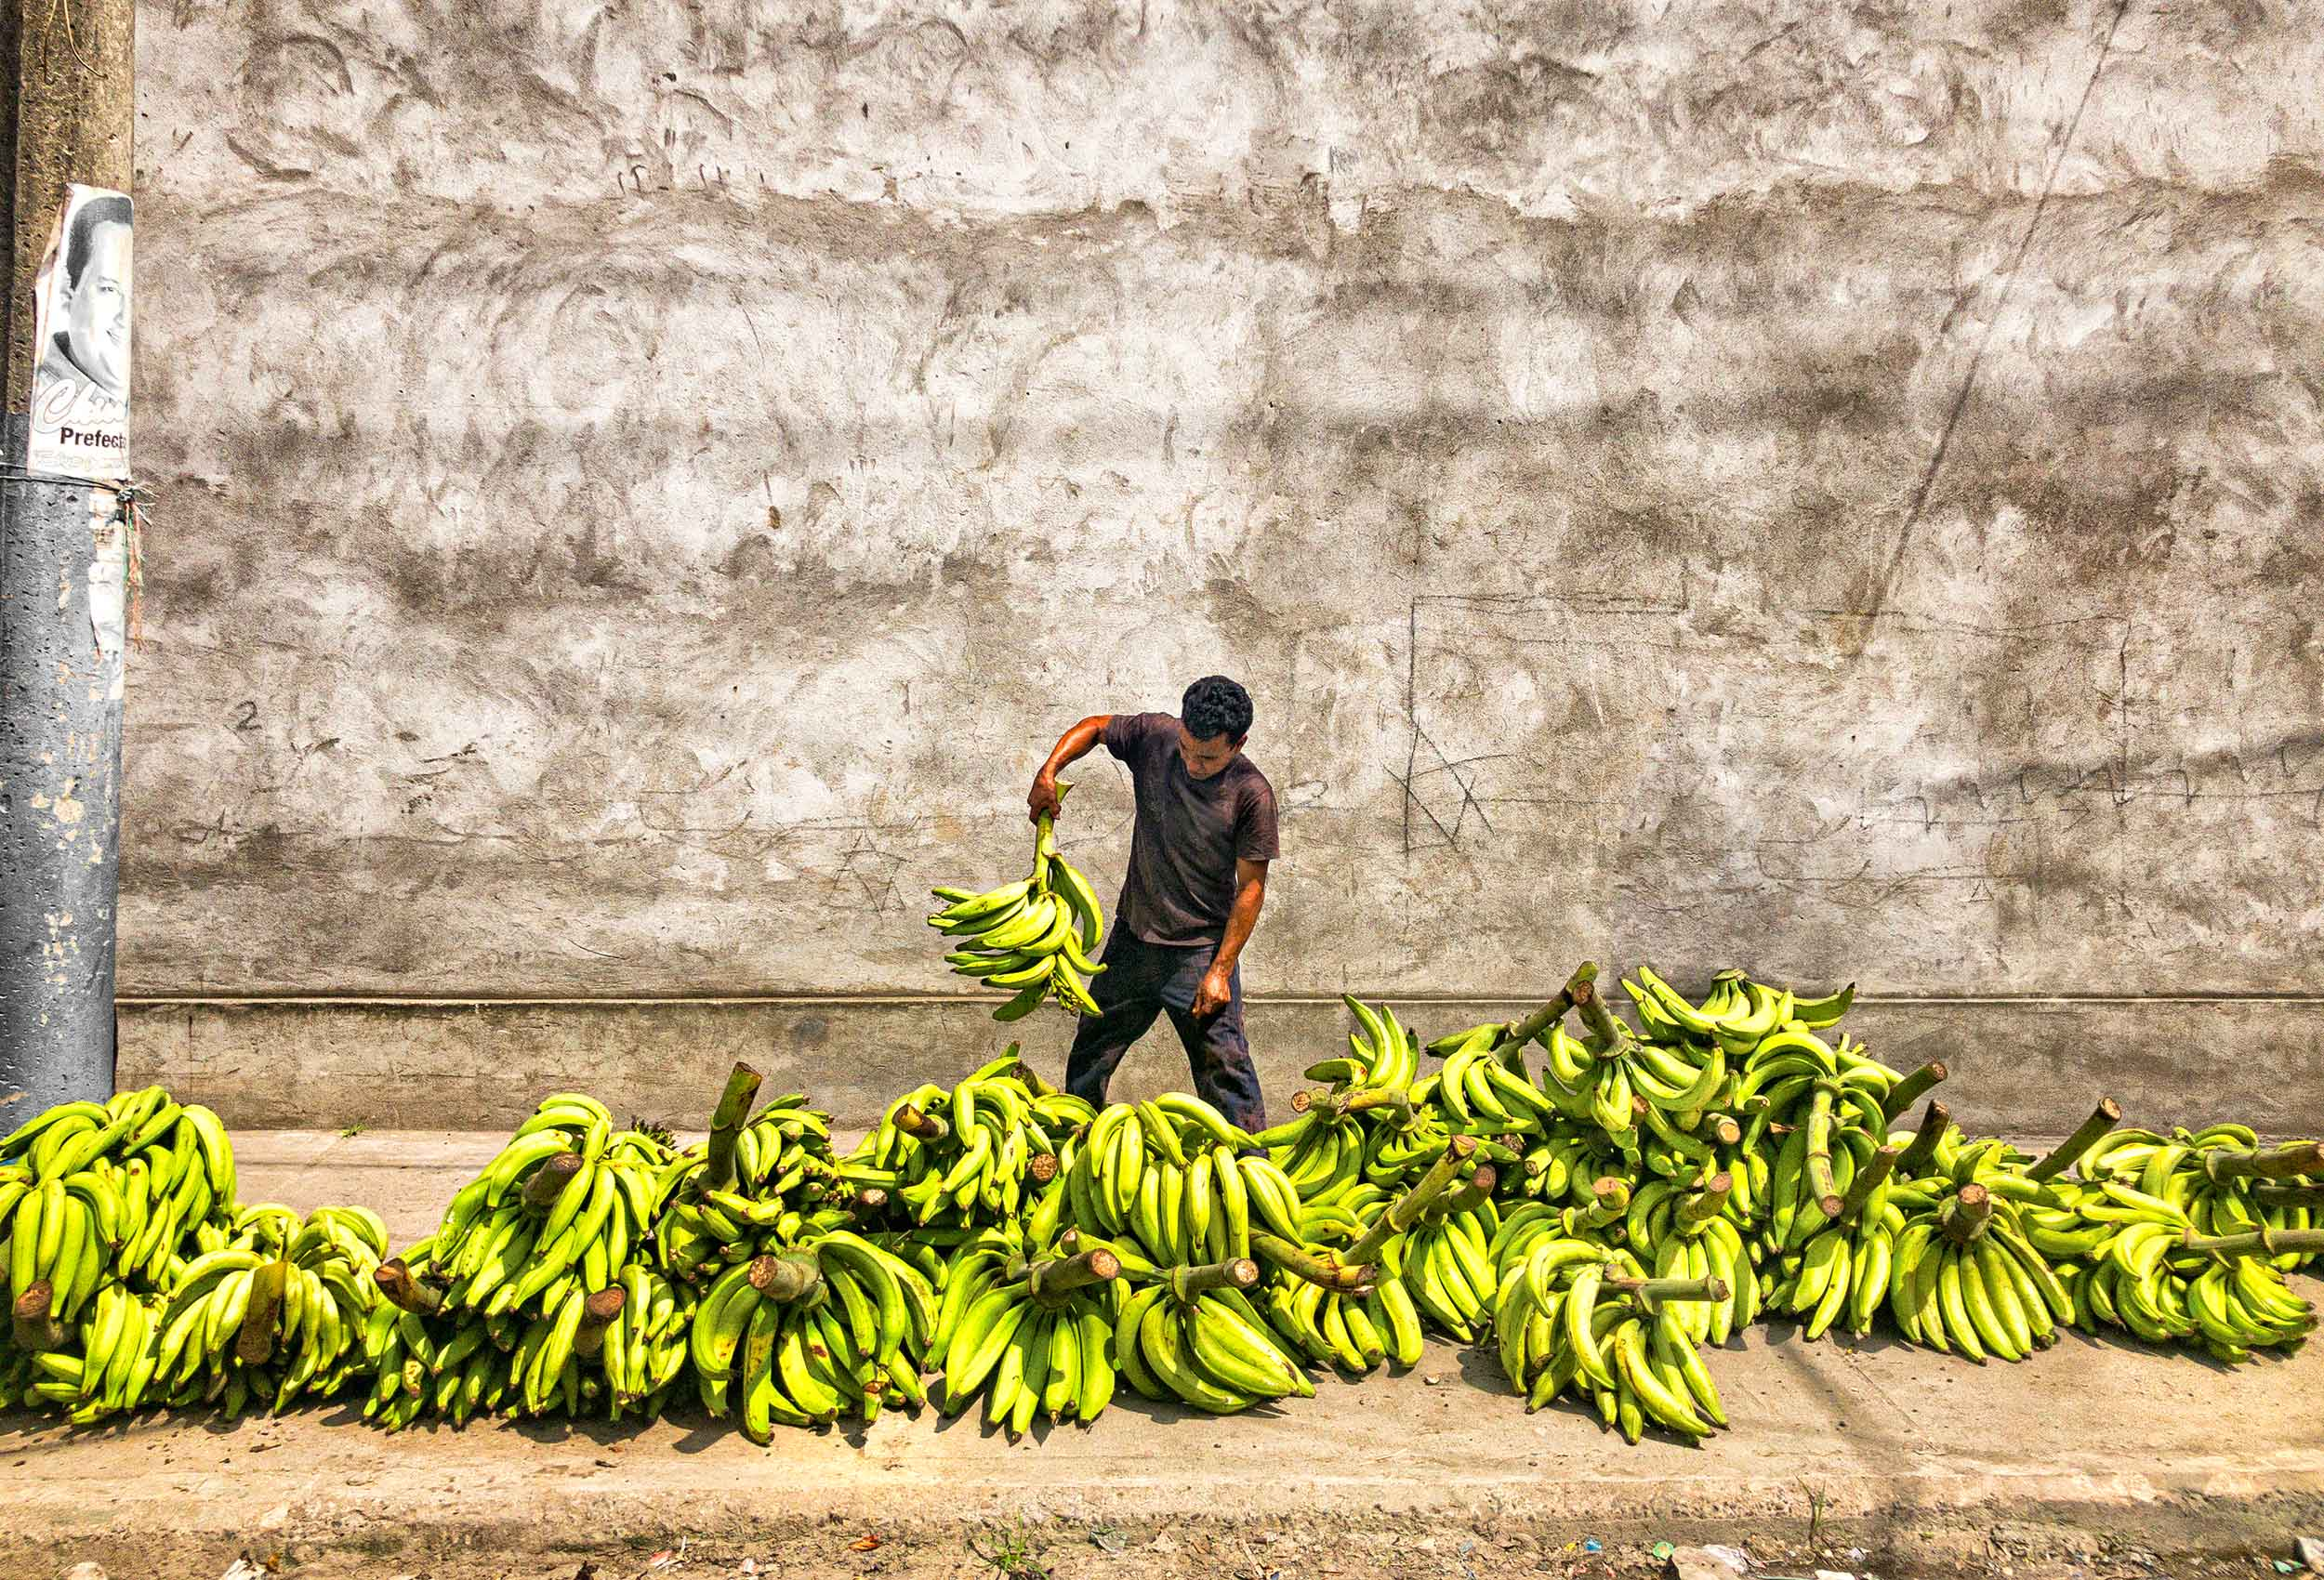 a street vendor in esmeraldas ecuador sorts his bananas before opening his stand for business